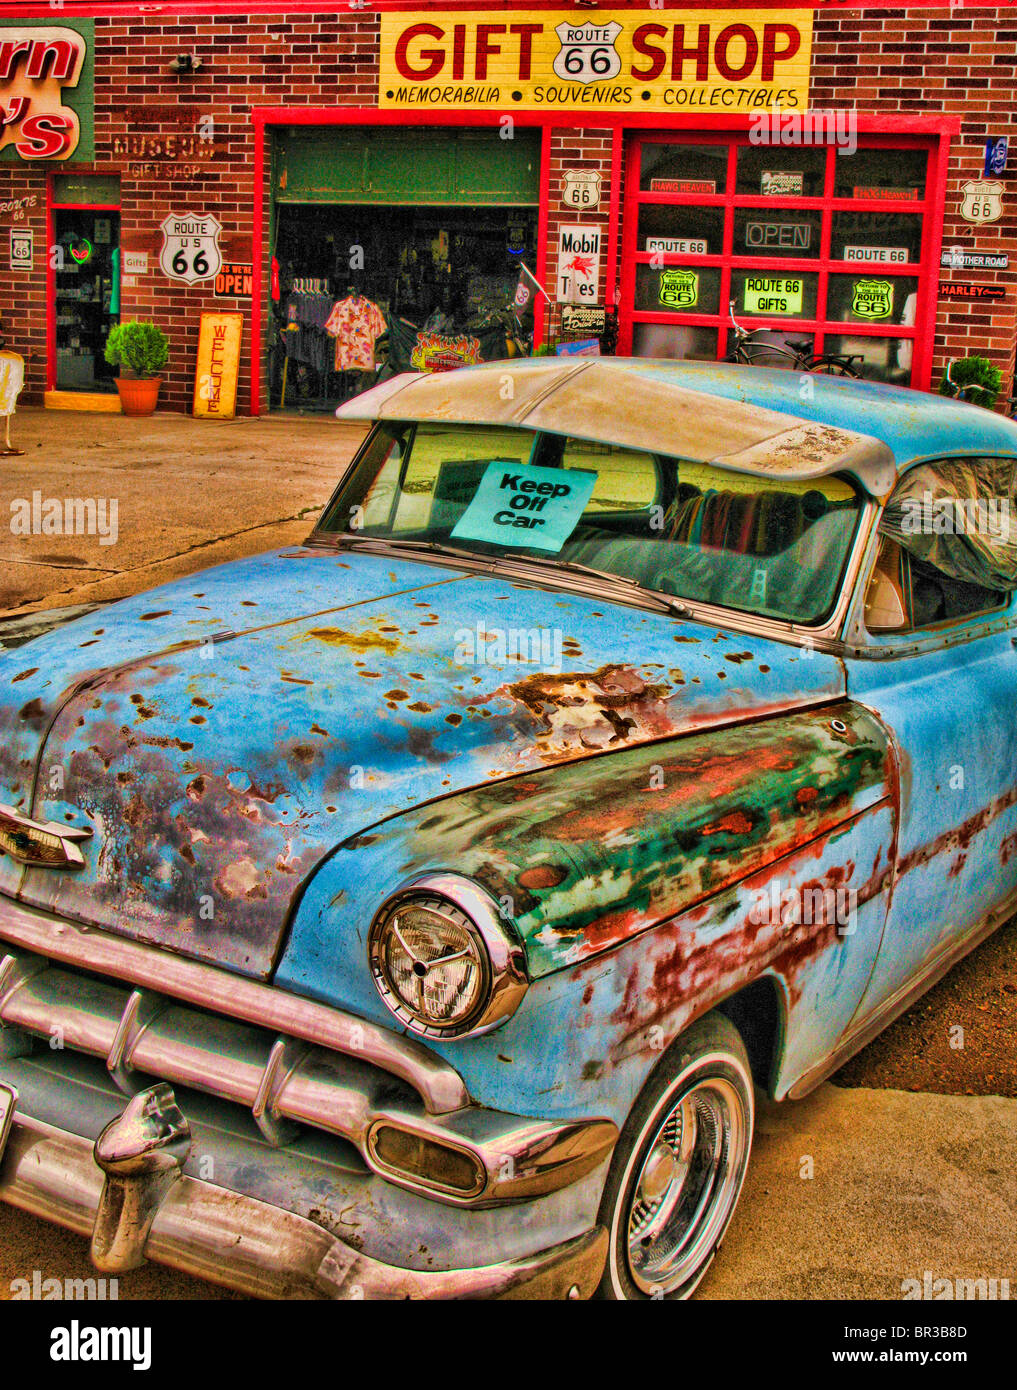 Vintage car on Old Route 66 Stock Photo: 31422173 - Alamy